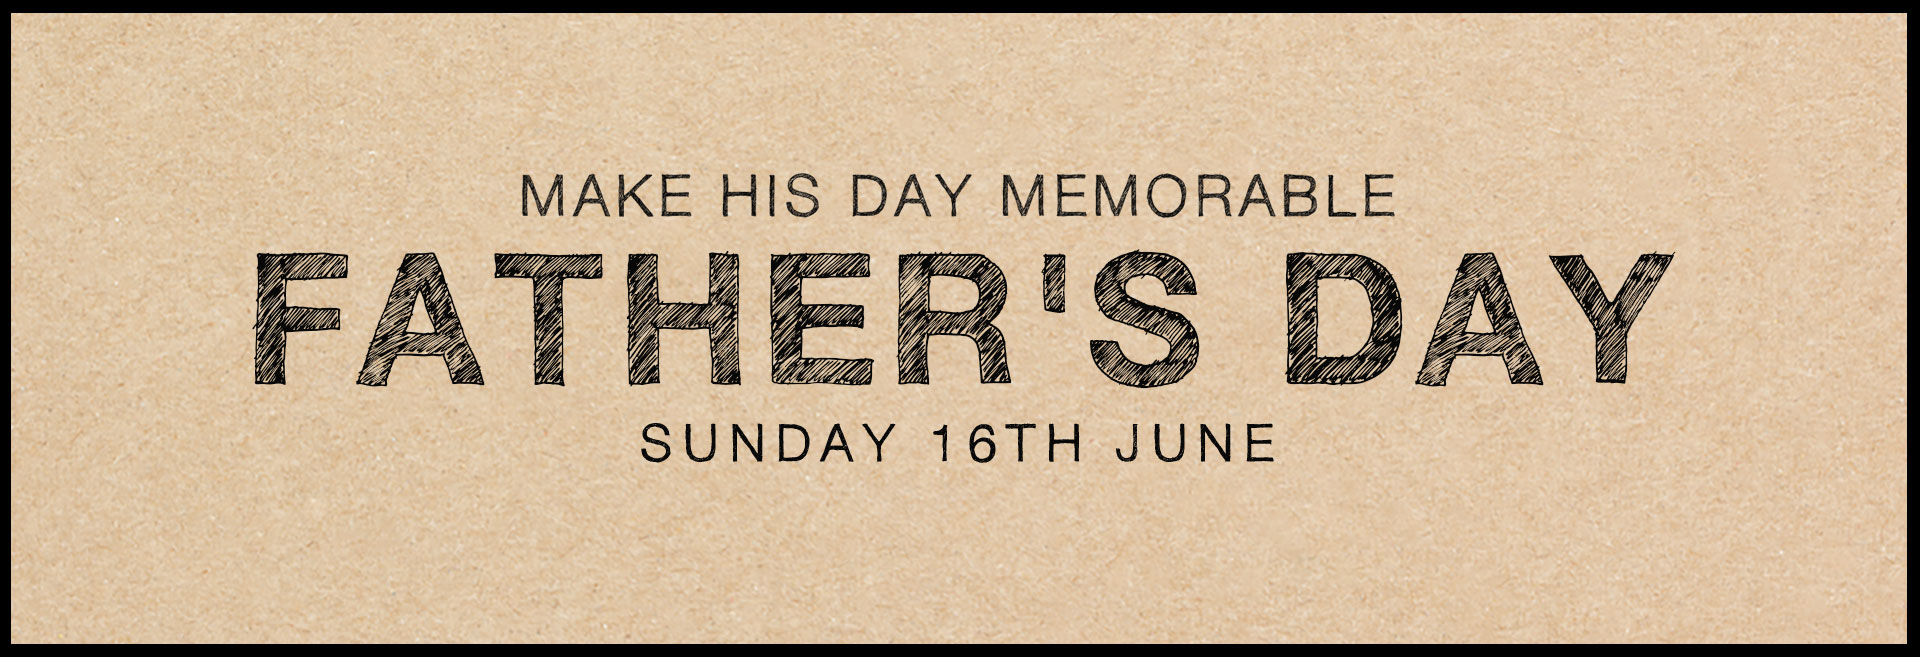 Father's Day at The Woodstock Arms